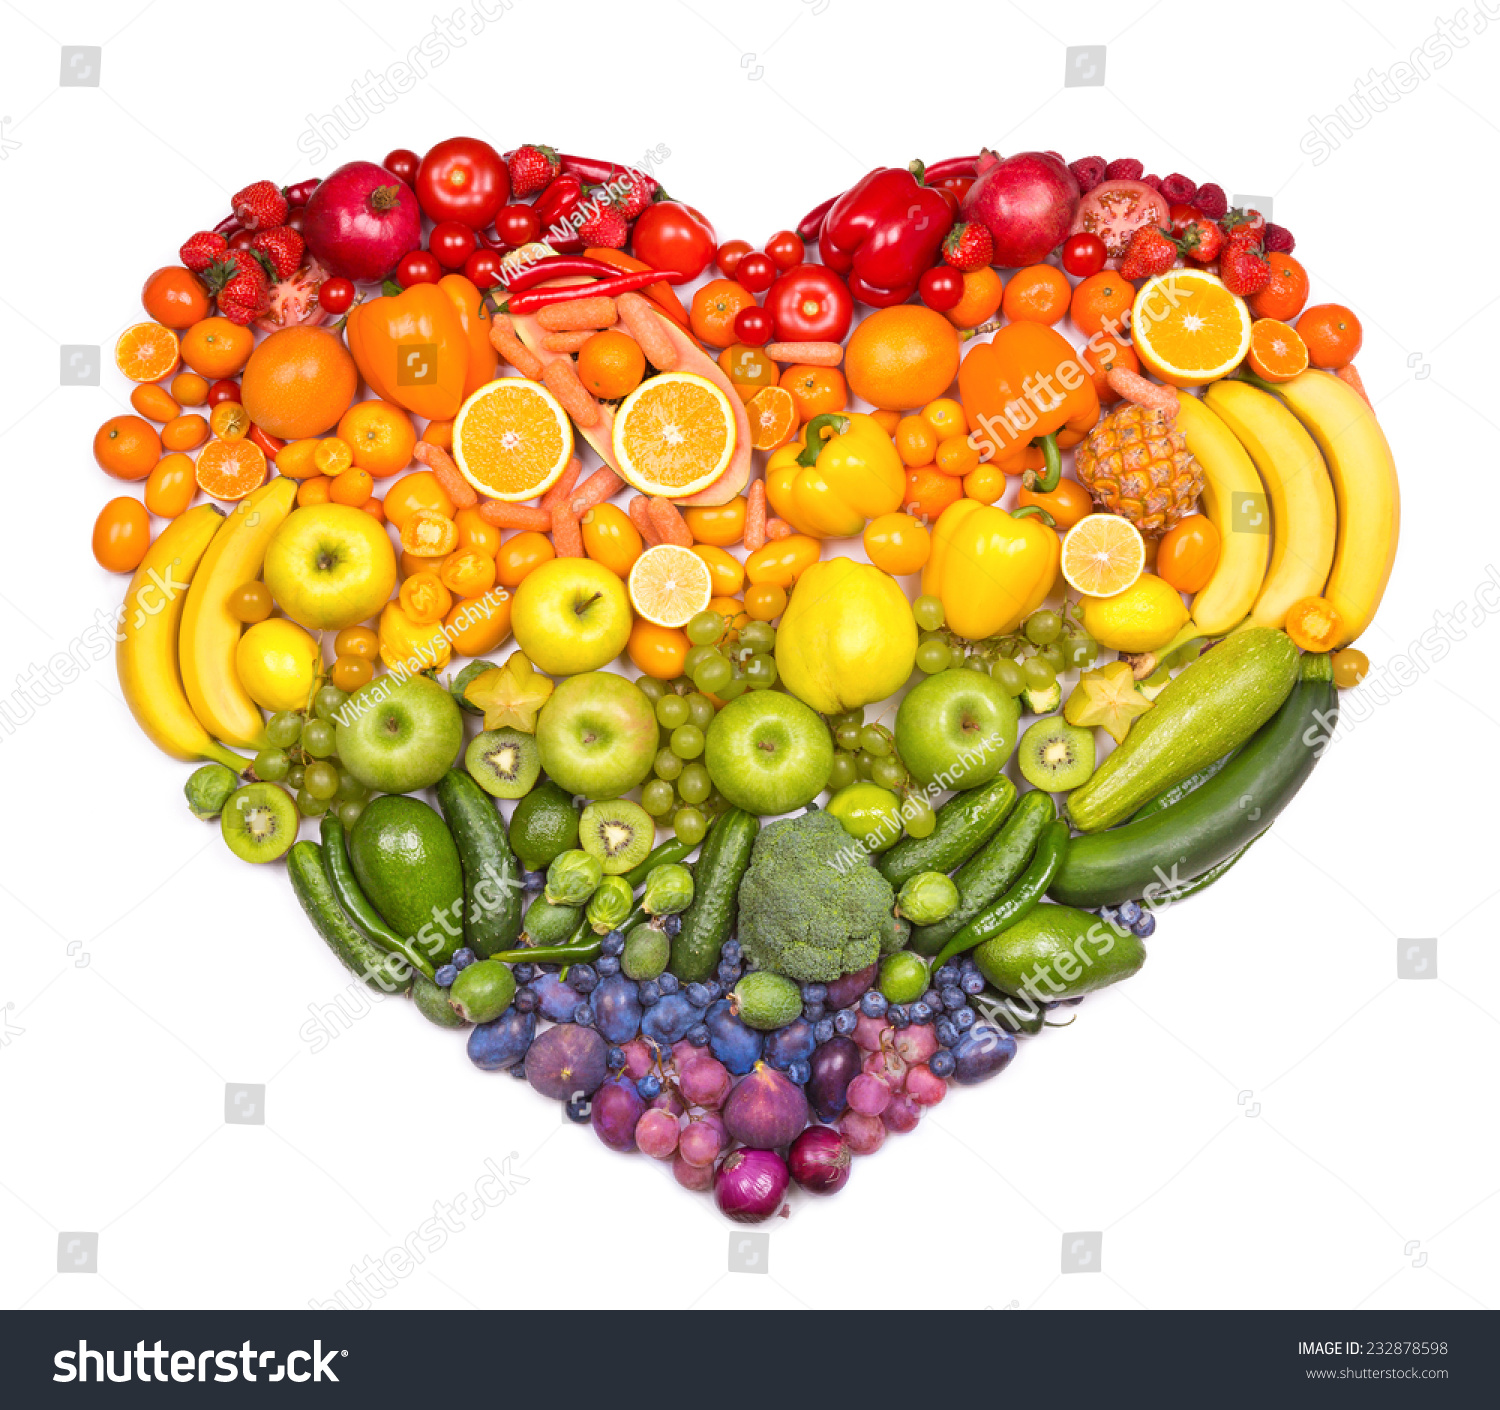 http://image.shutterstock.com/z/stock-photo-rainbow-heart-of-fruits-and-vegetables-232878598.jpg